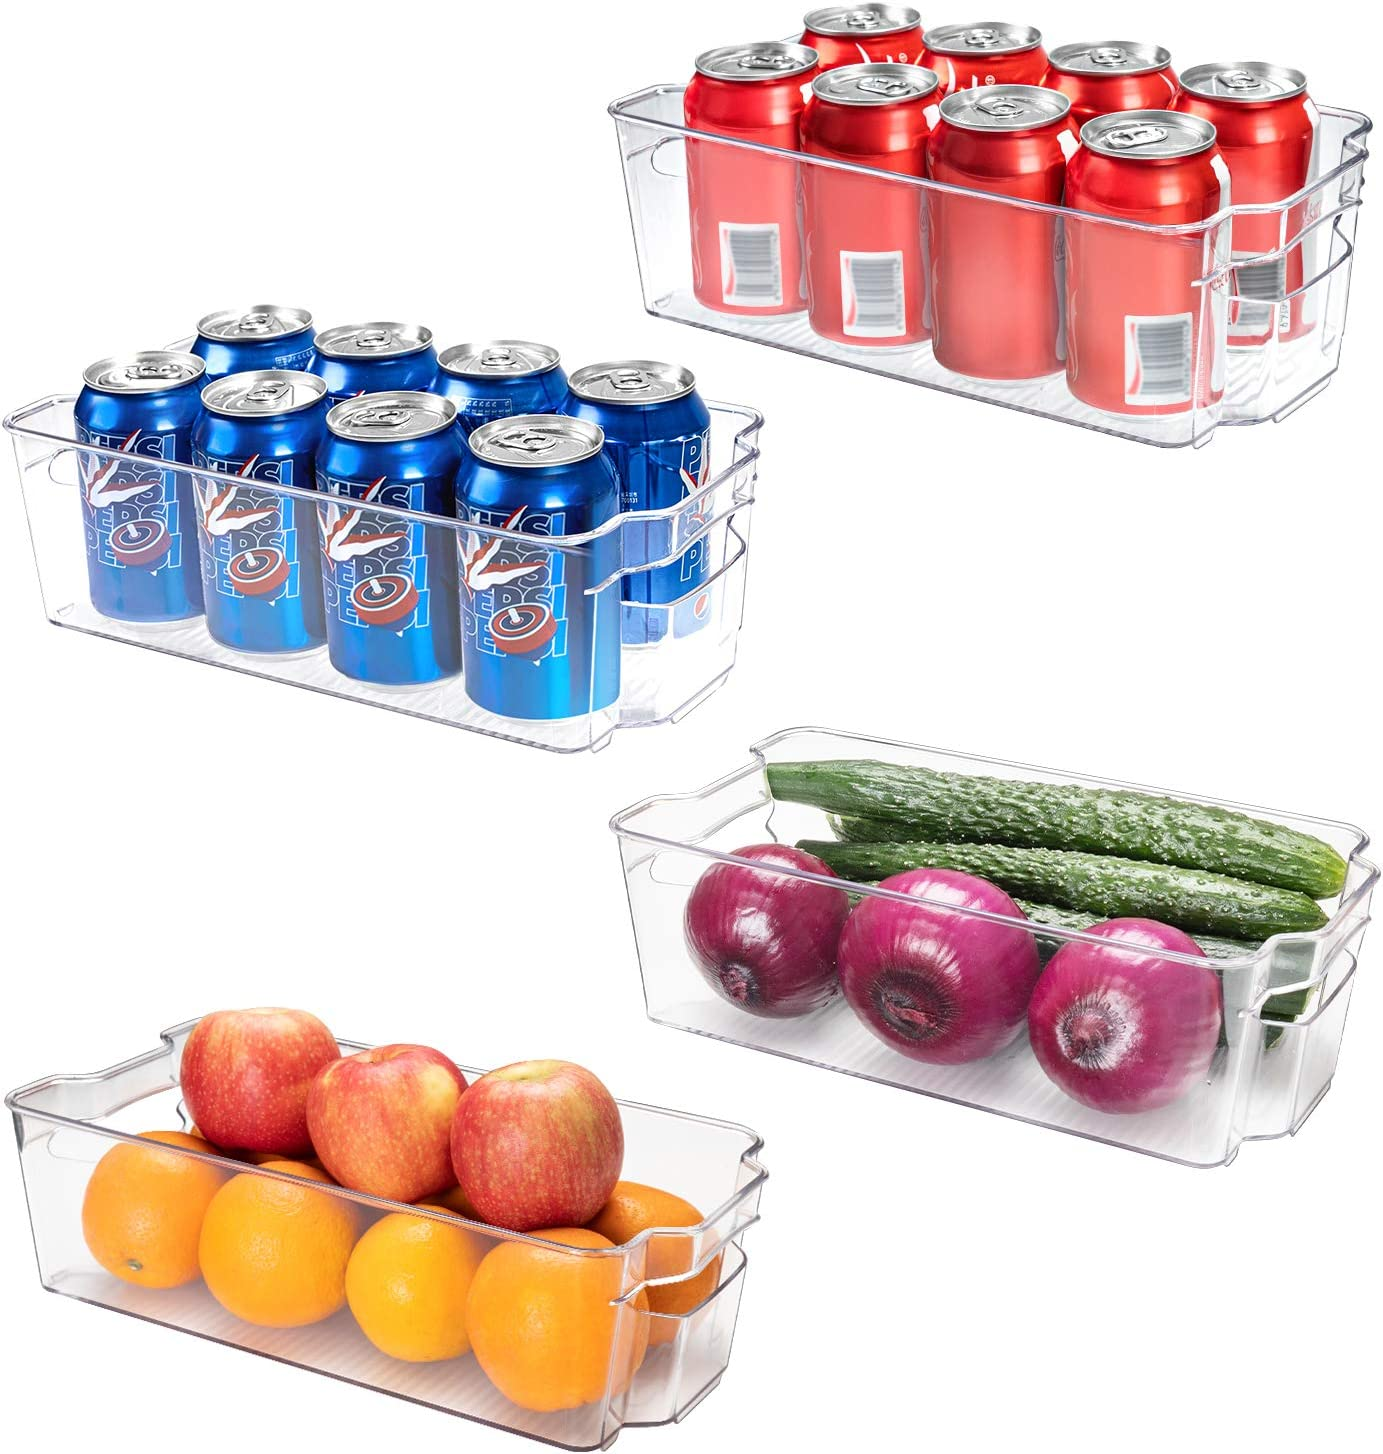 SMARTAKE Refrigerator Organizer Bins, 4-Pack Food Storage Bins, Clear Plastic Stackable Soda Can Organizer with Handle, for Freezer Cabinet Fridge Kitchen Organization and Storage (4 Medium)